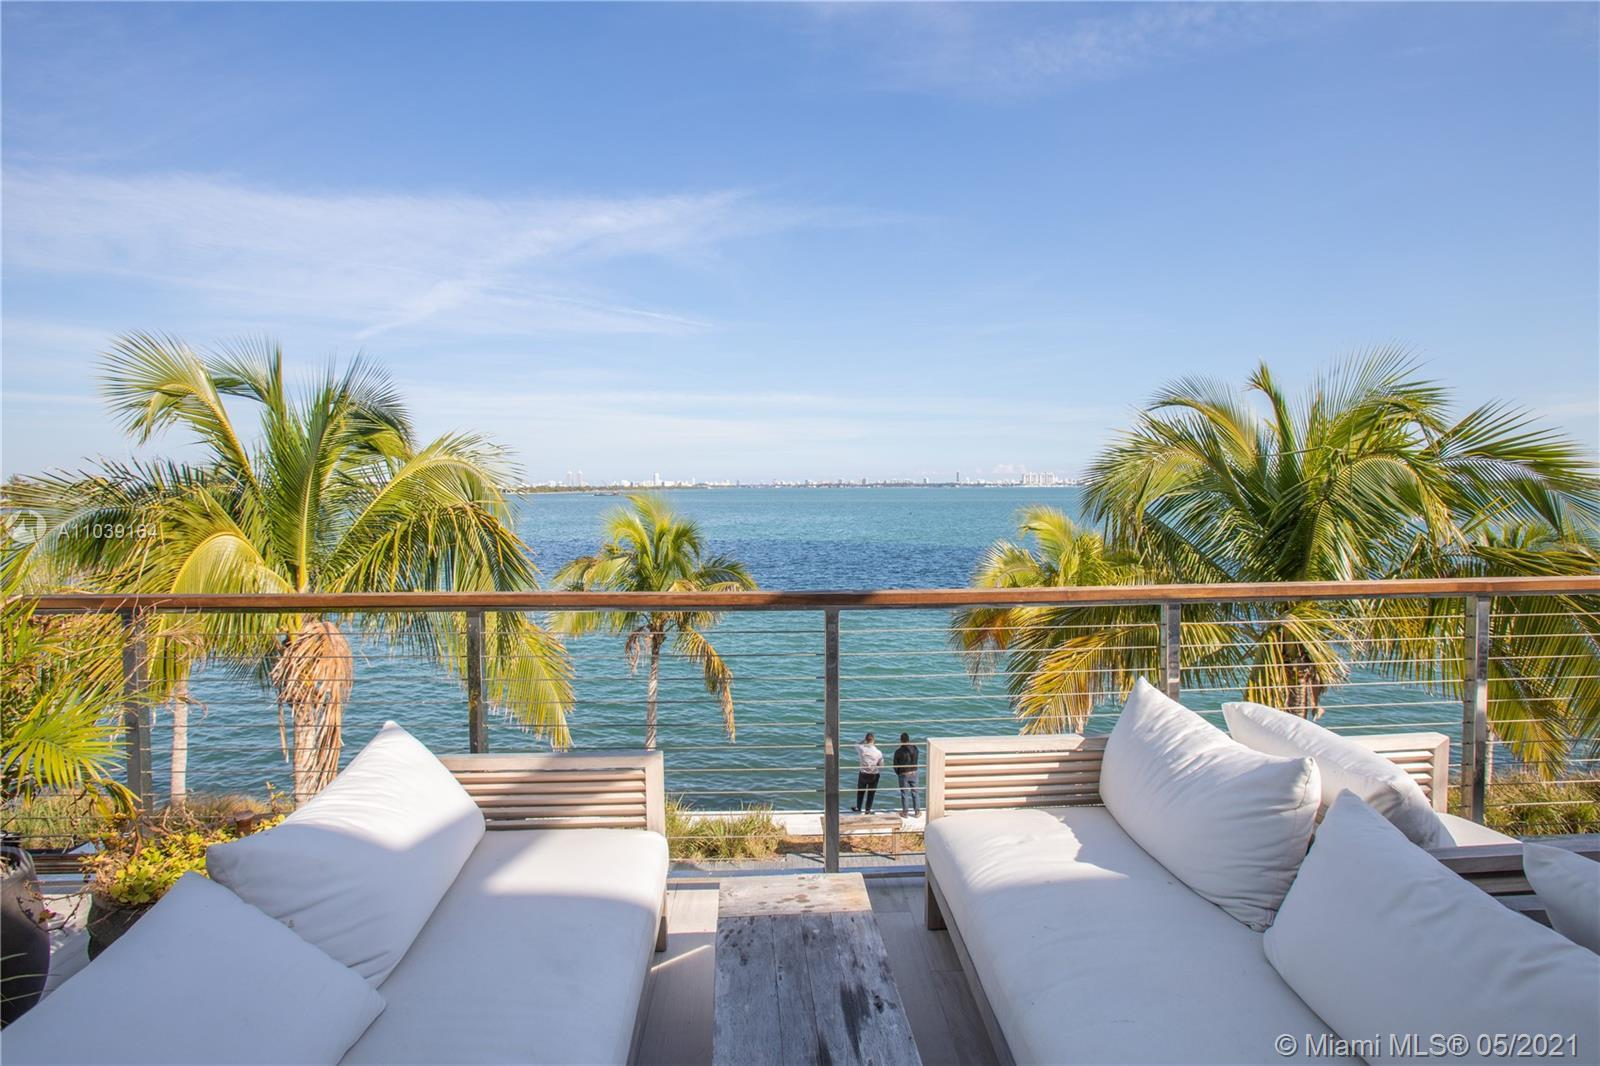 Spectacular 2 bedrooms, 3 bathrooms unit with private elevator at Gran Paraíso!!! The apartment feat